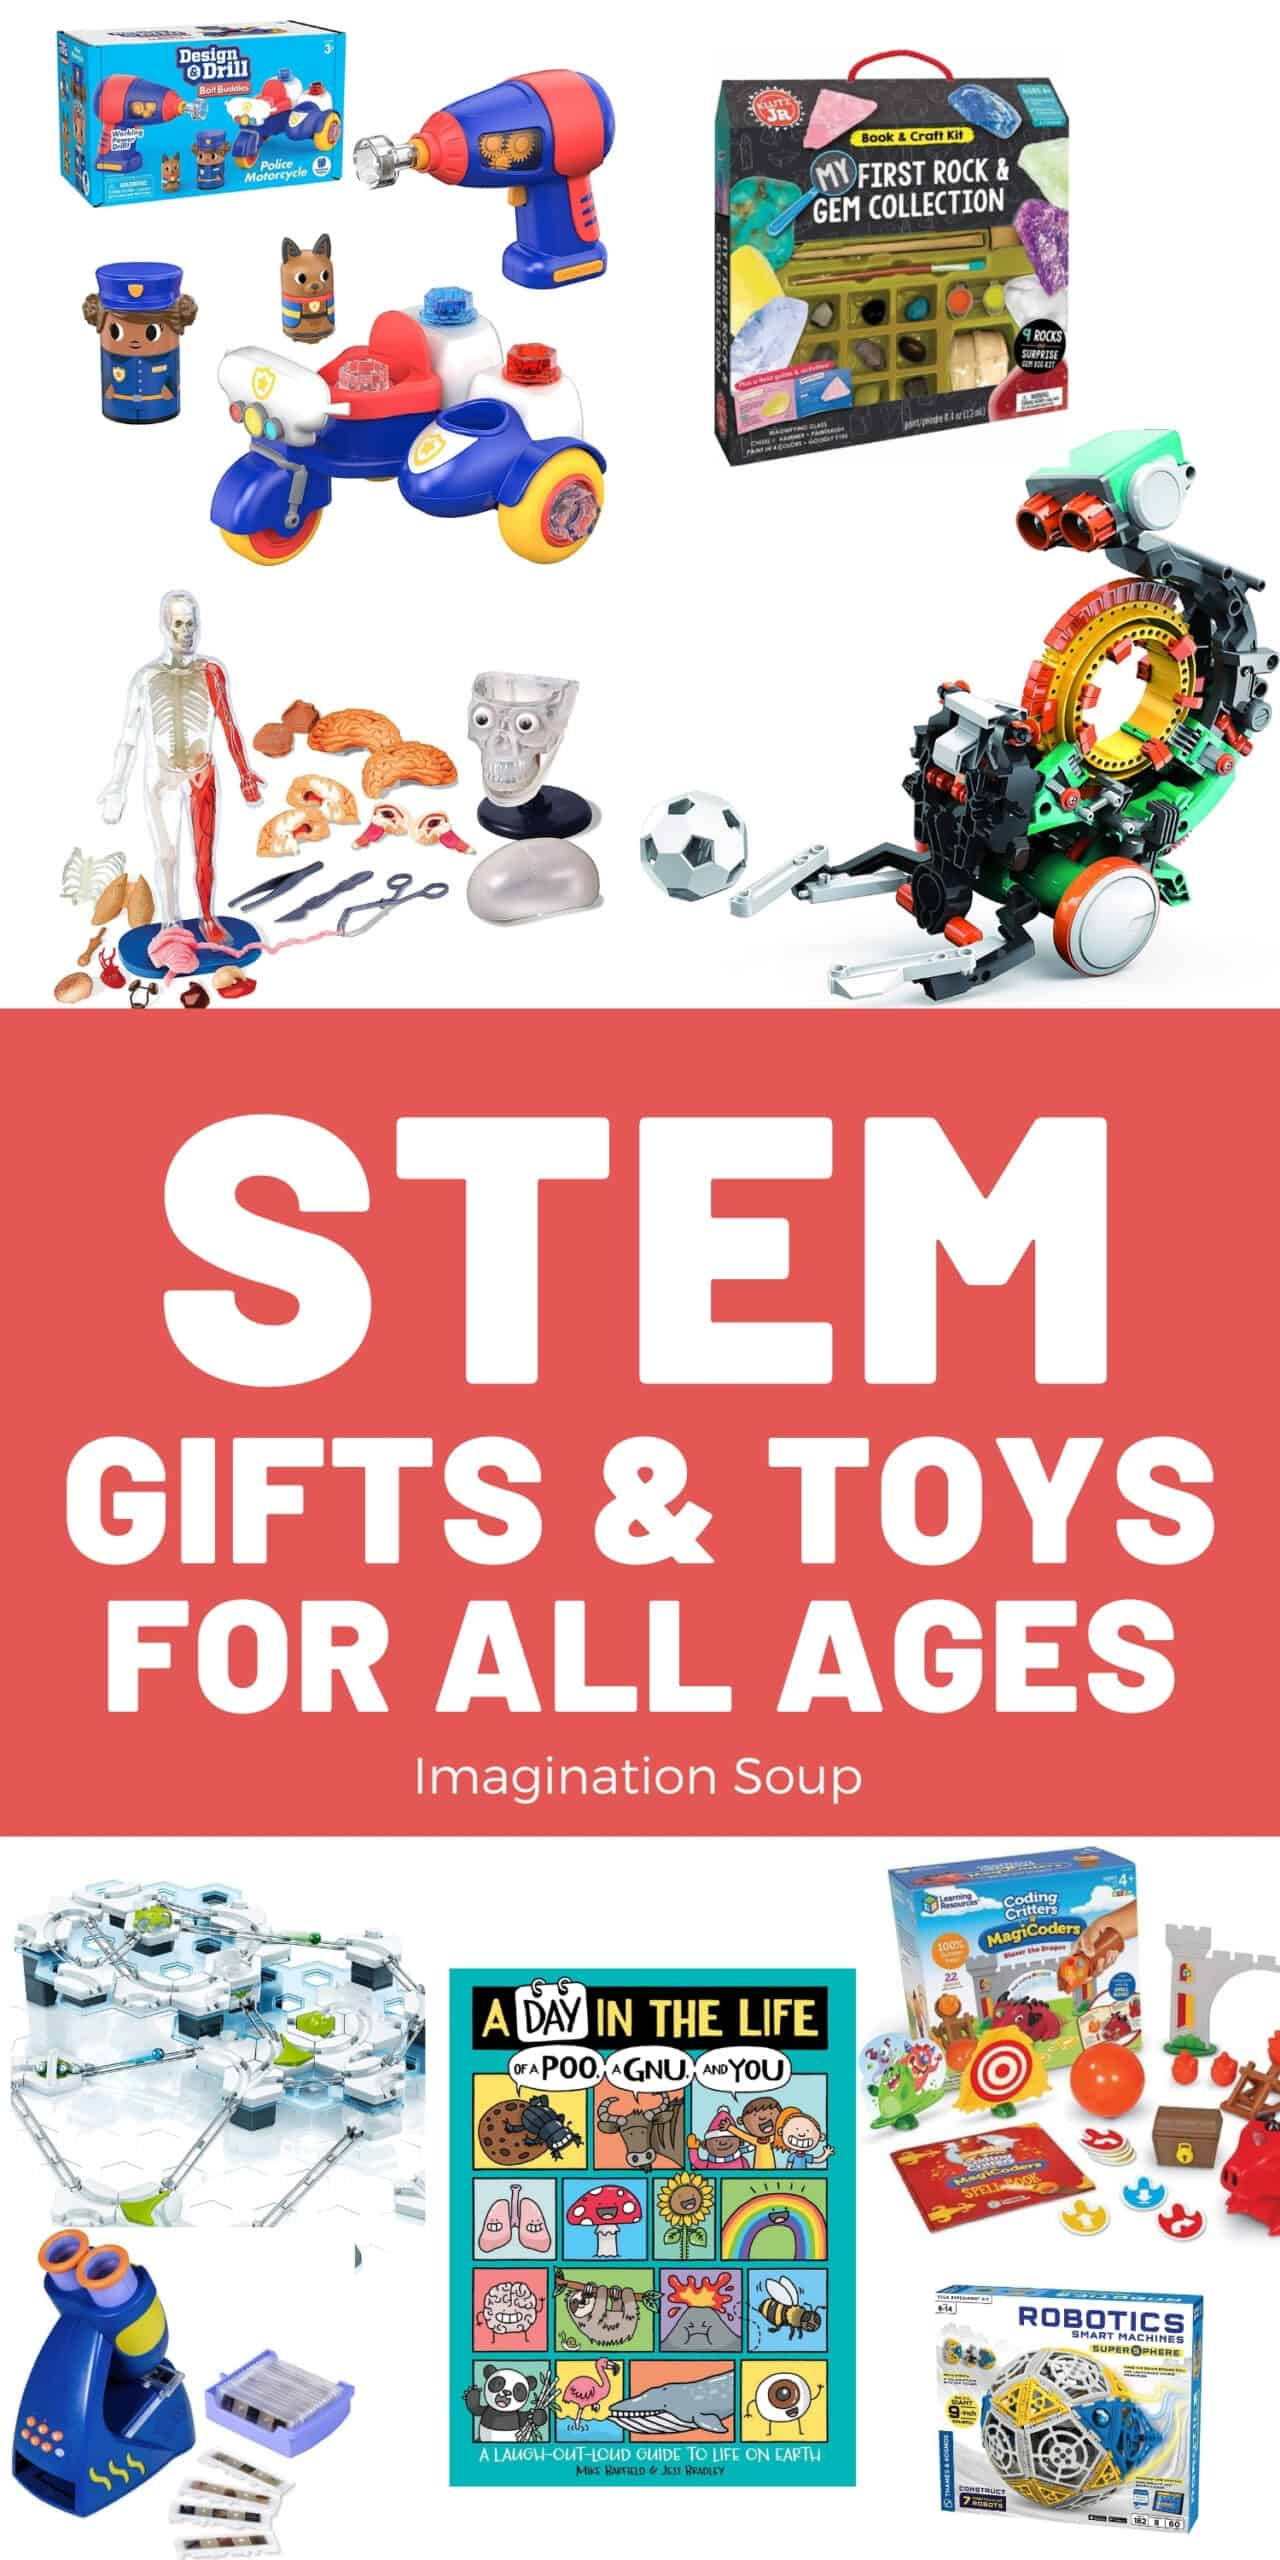 STEM Gifts & Toys for Kids of All Ages